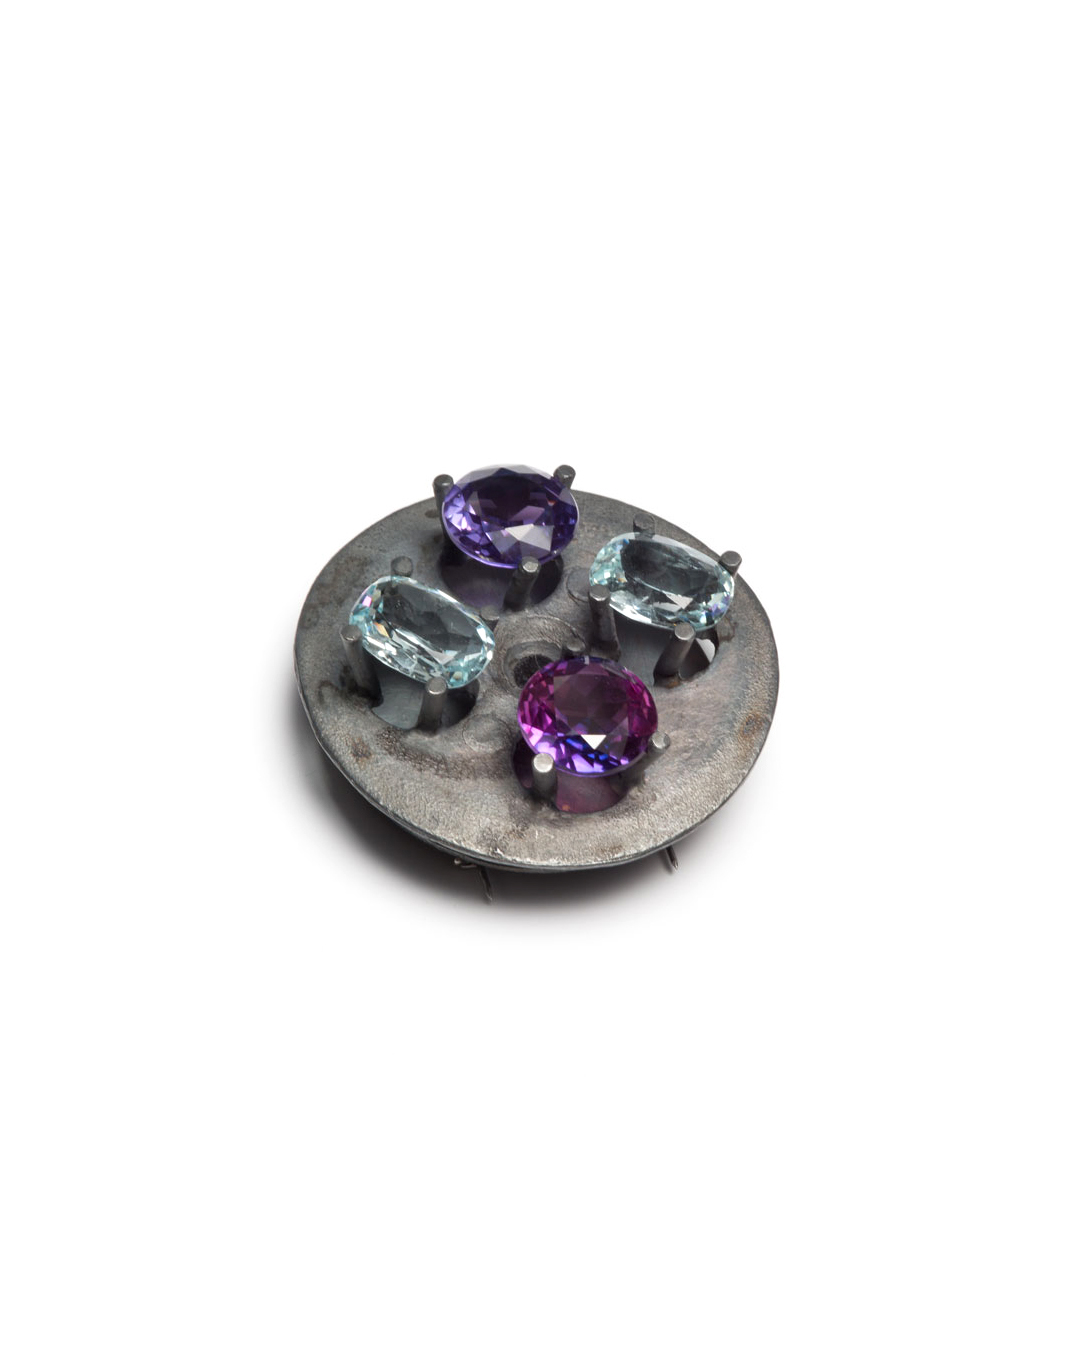 Winfried Krüger, untitled, 1993, brooch; oxidised silver, aquamarine, amethyst, kunzite, ø 55 mm, €3650